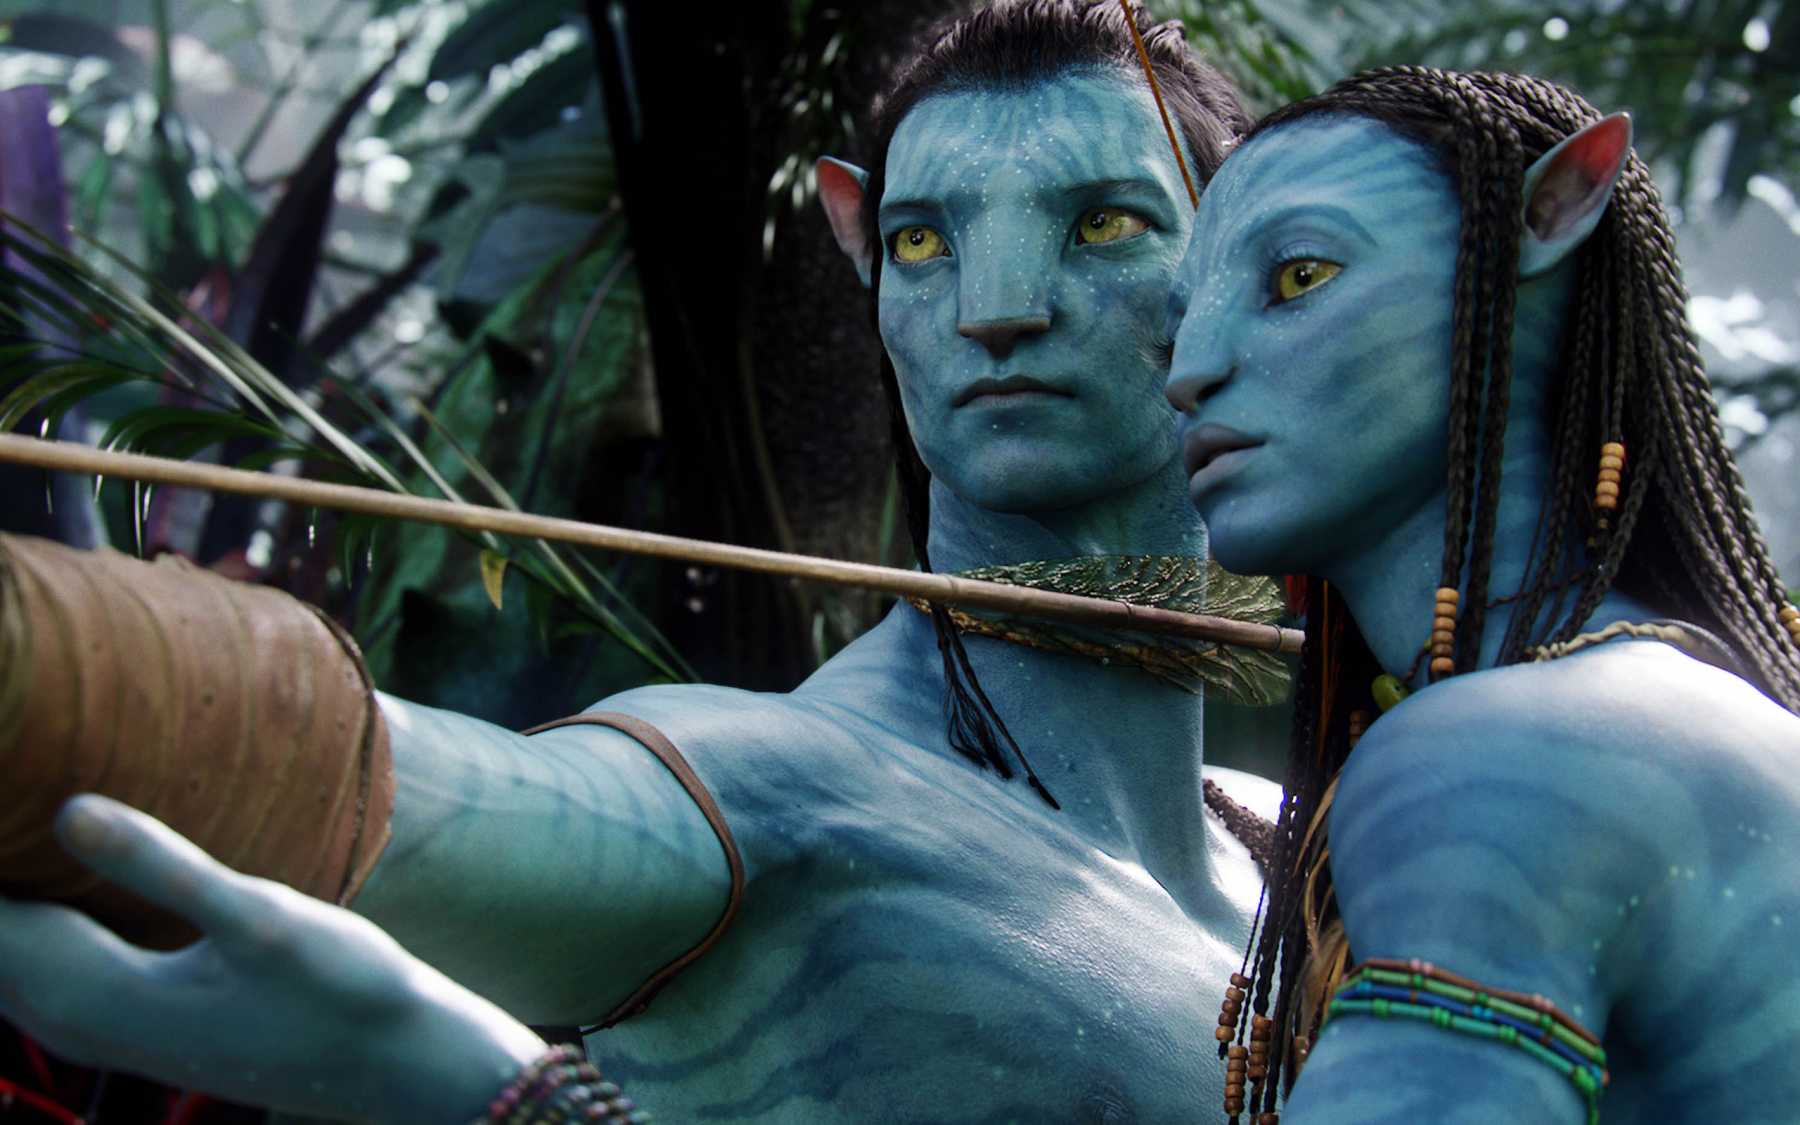 Zoë Saldana And Sam Worthington Have Signed On For Three Avatar Sequels